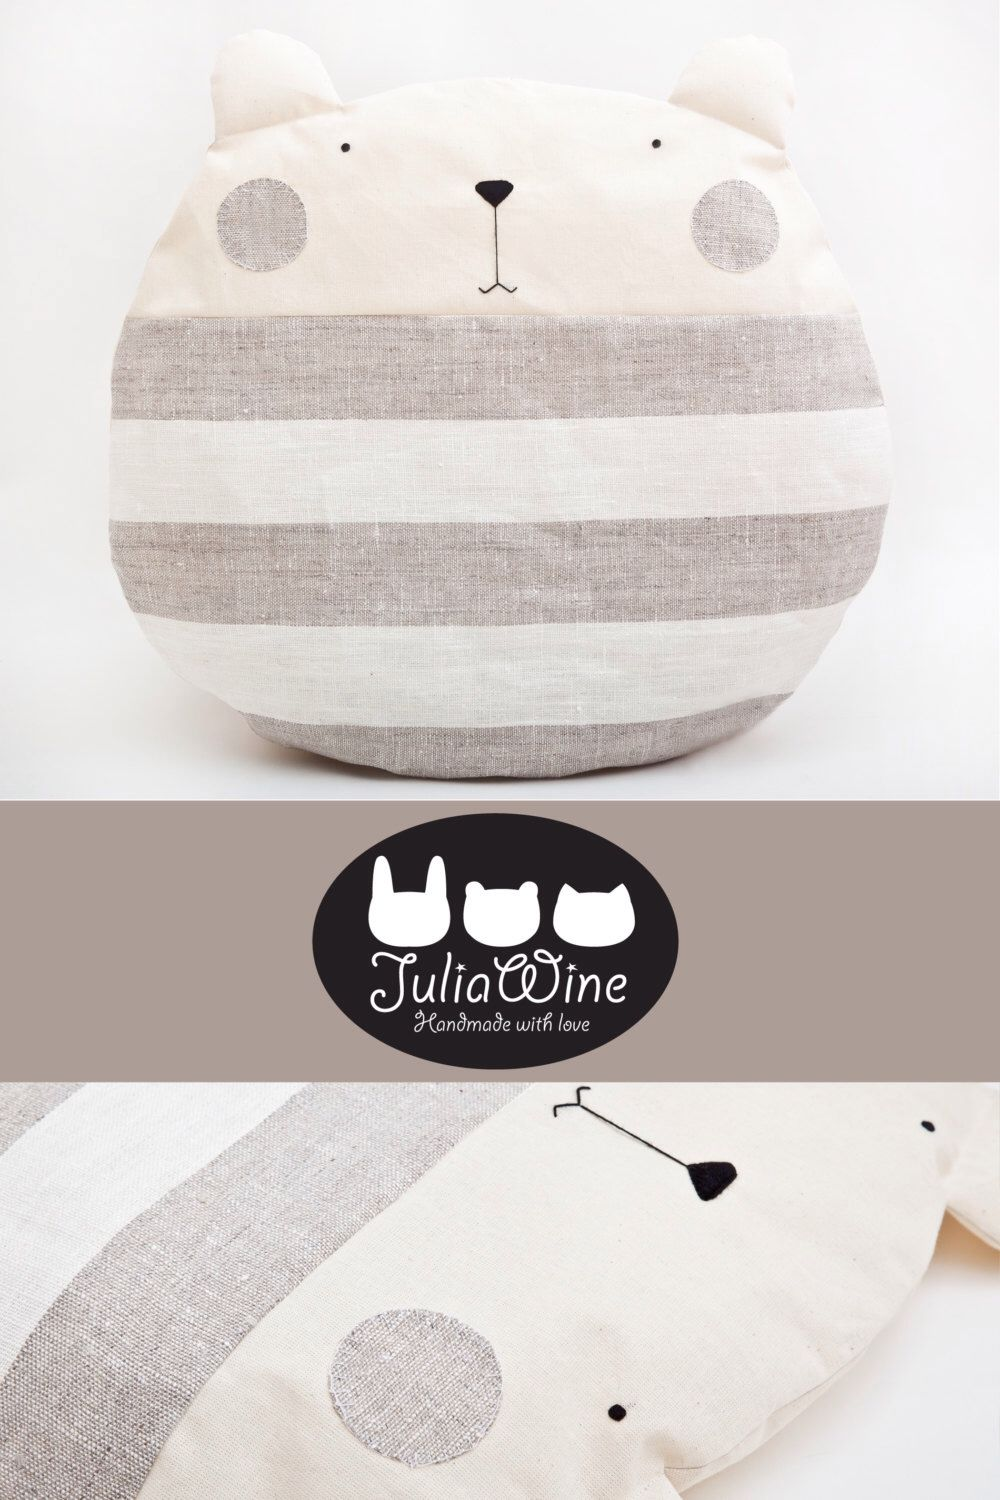 Striped Baby Pillow, Cute Floor Cushion, Bear Pillow, Nursery Decor, Gray Bedding Baby, Gifts for Newborns Housewarming Gift Kids Room Decor #bearbedpillowdolls